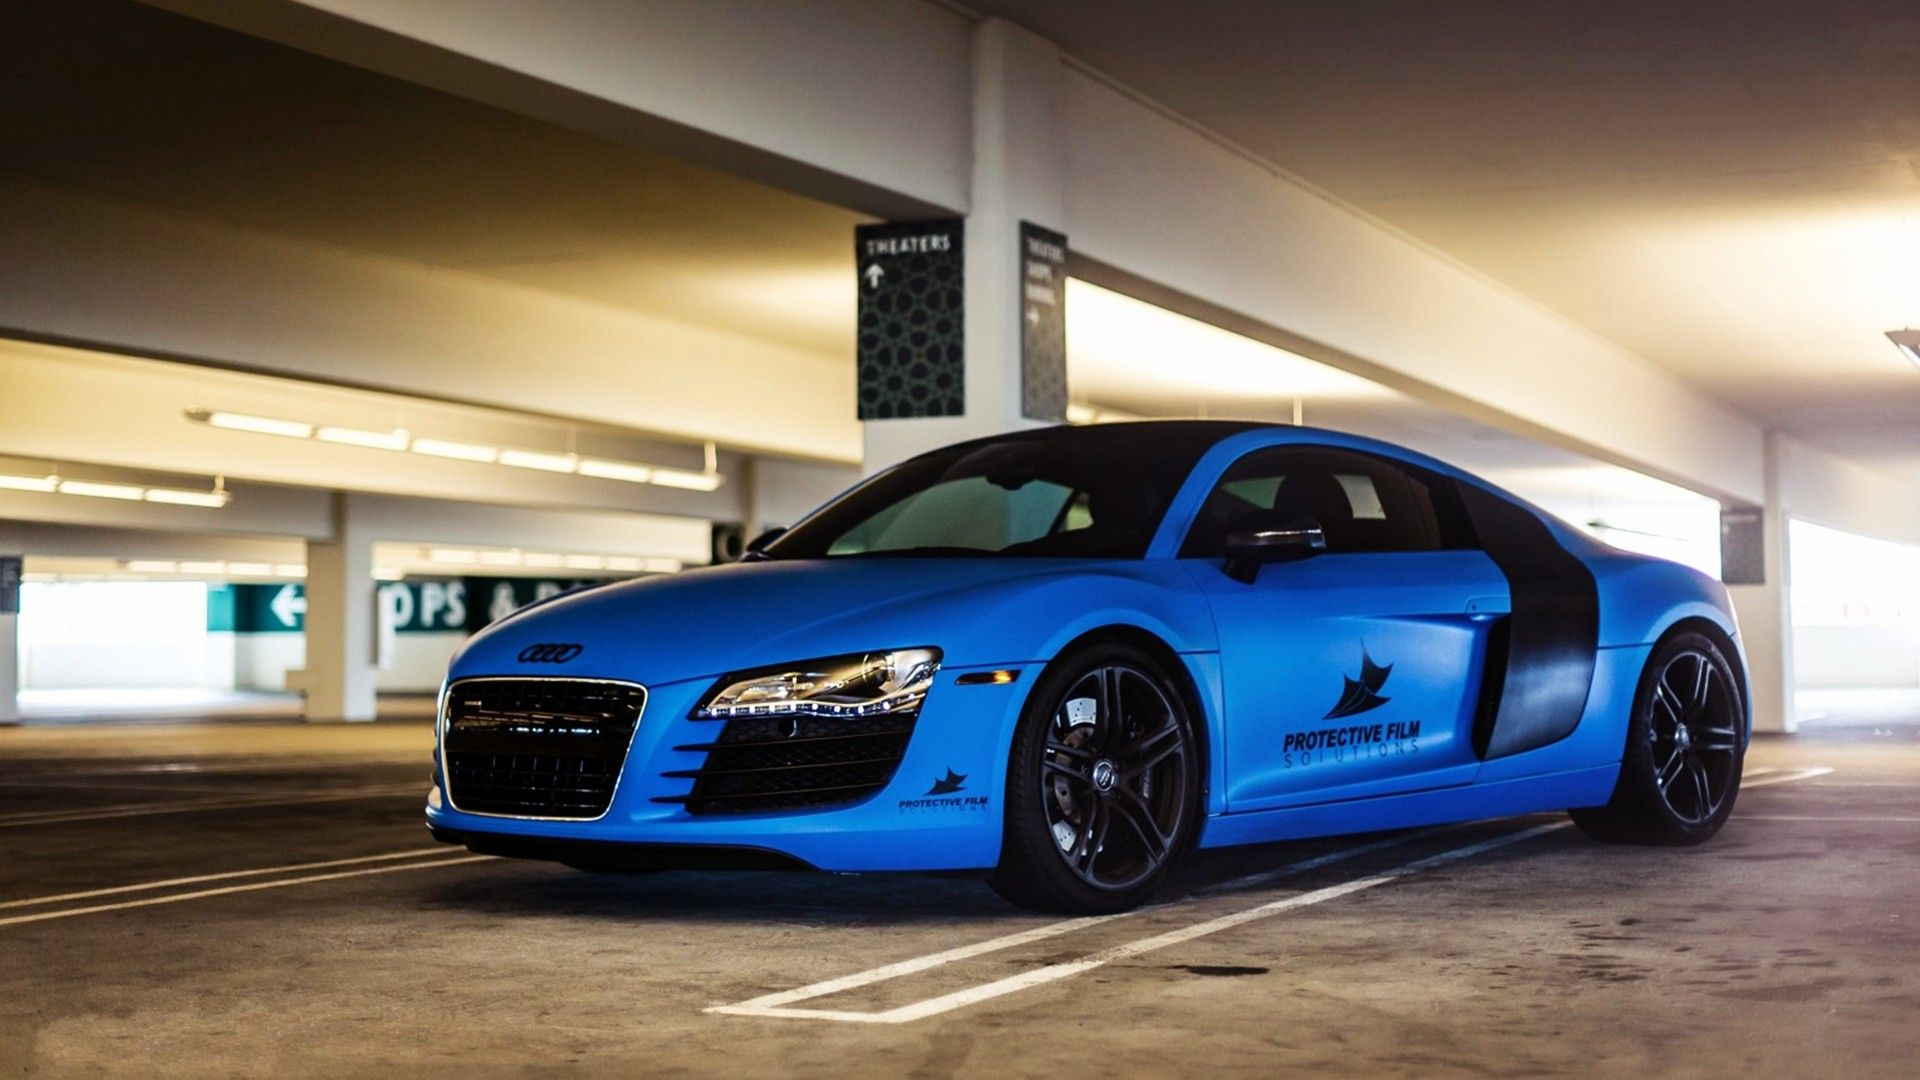 Bon Cool Audi R8 Desktop Wallpaper Hd